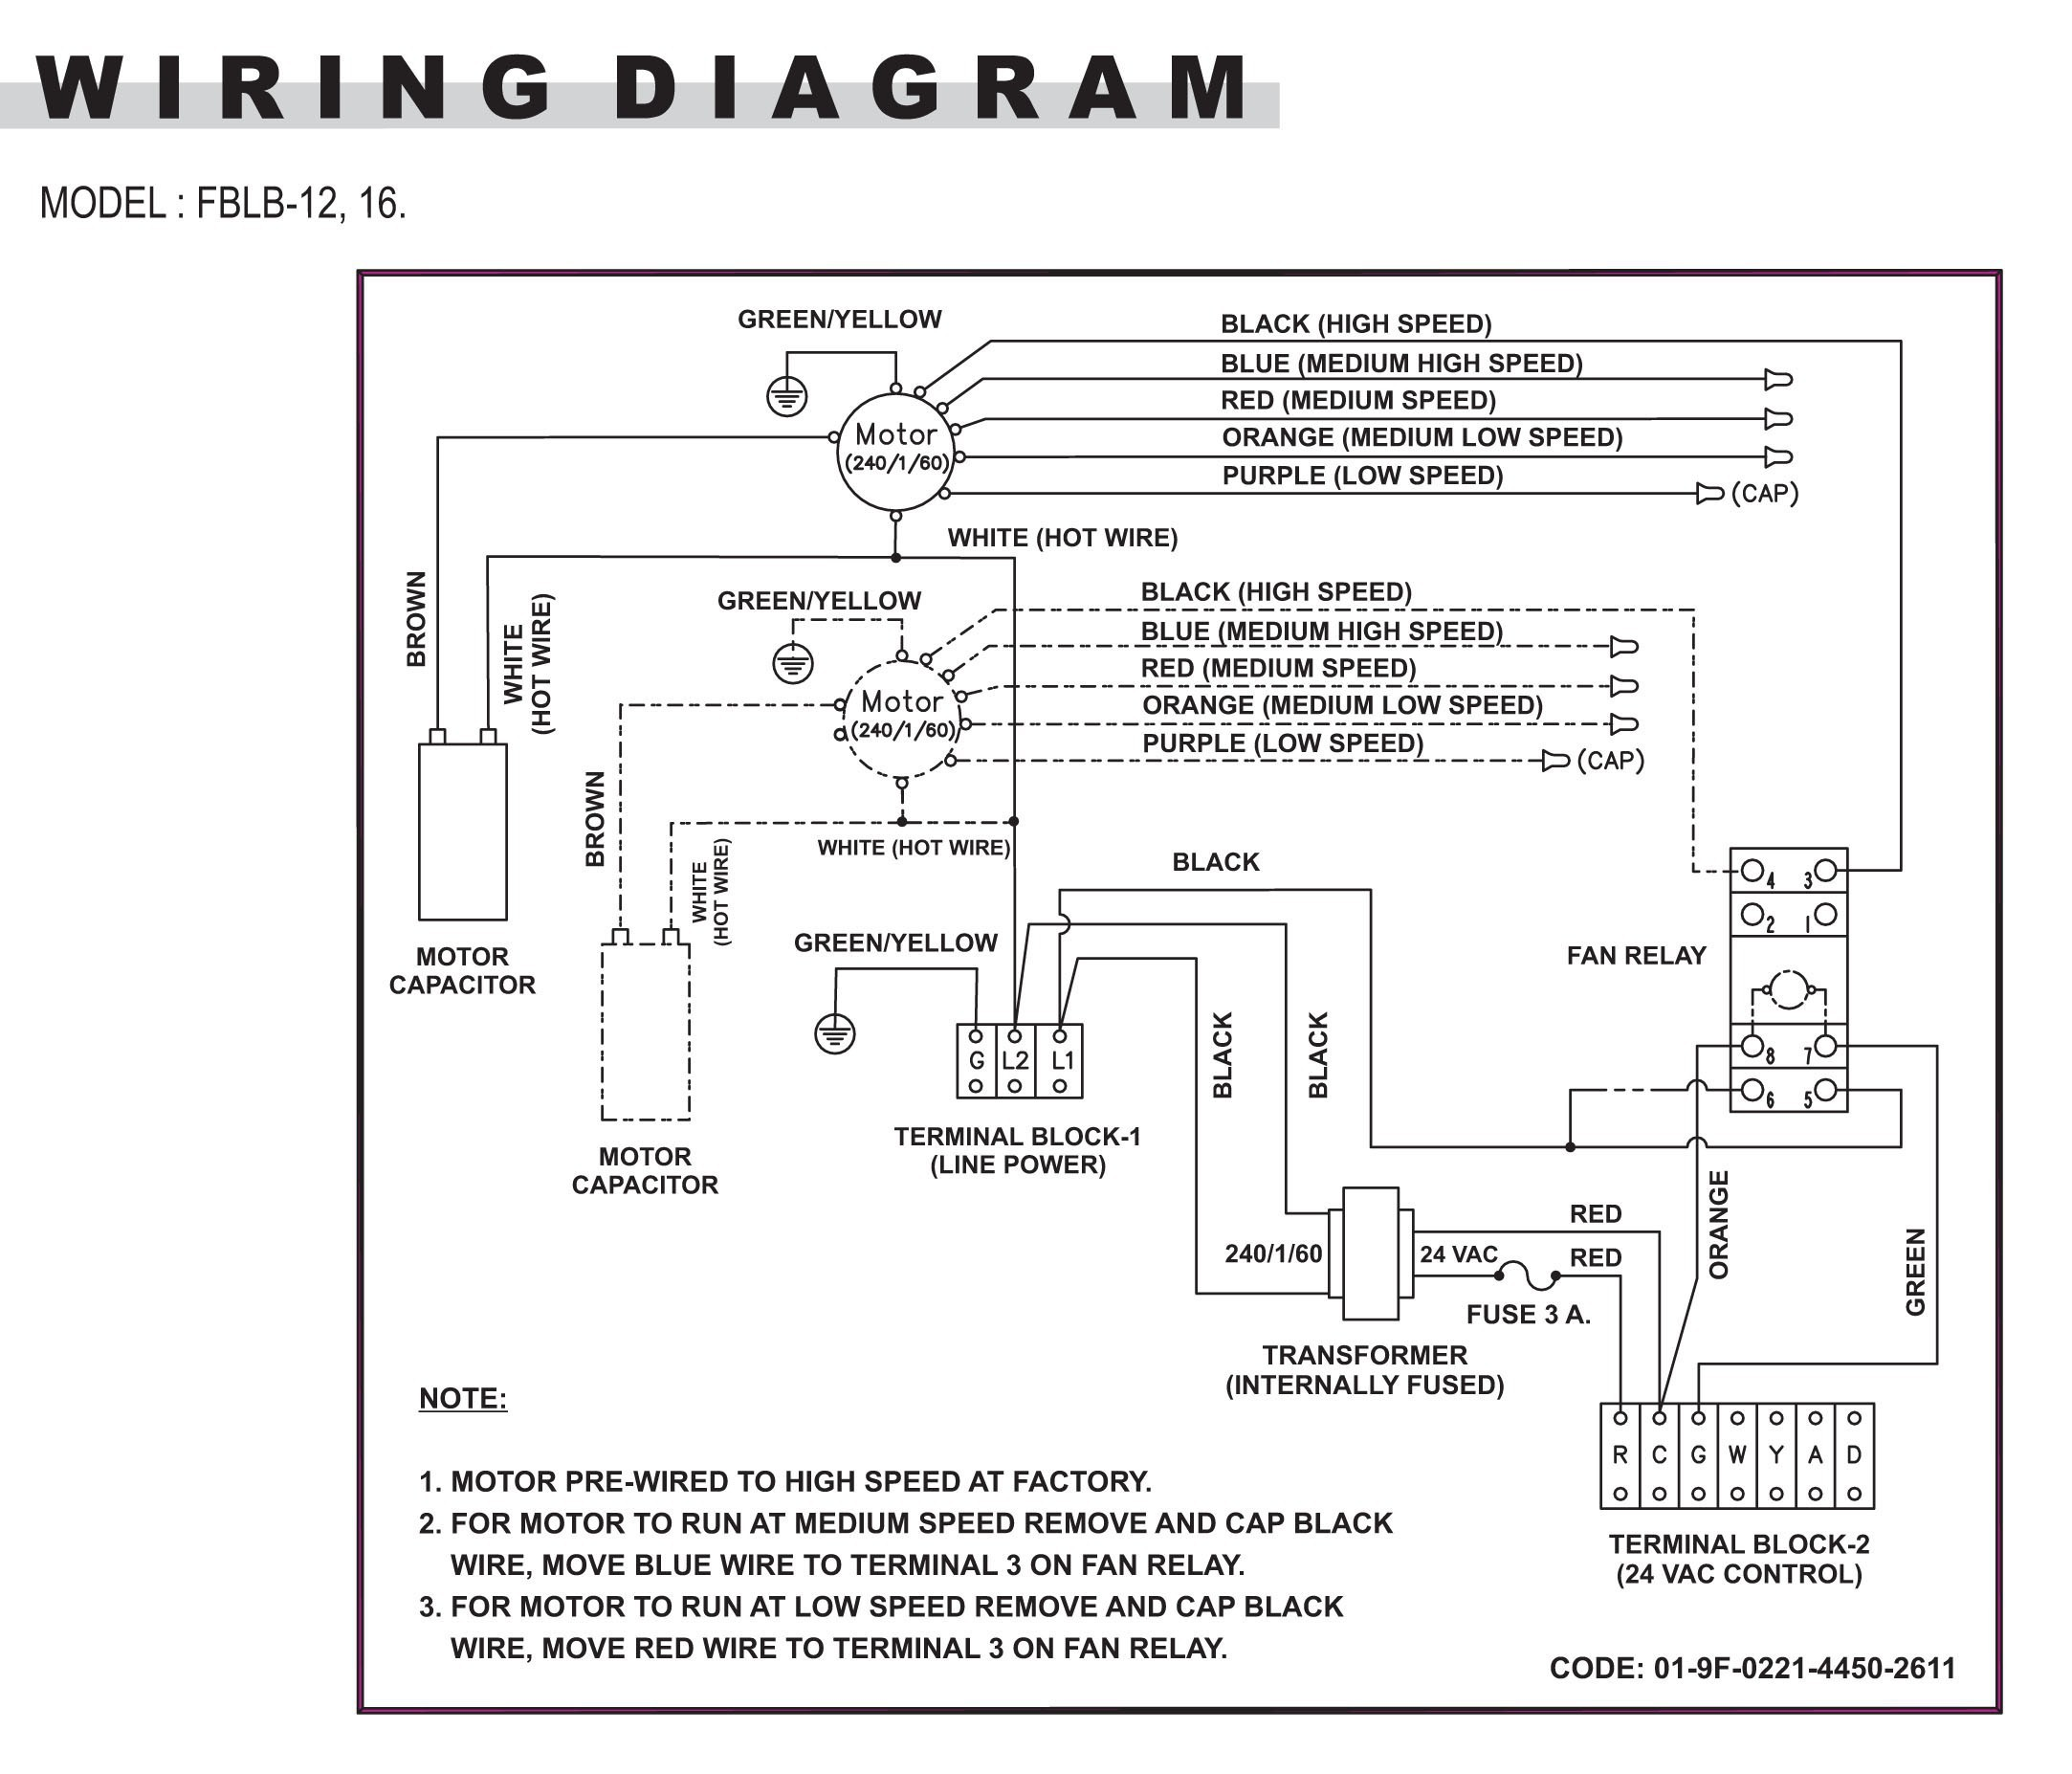 Water Heater Wiring Diagram Dual Element besides Electrical Wiring Diagrams For Air Conditioning also Circle Venn Diagram Template Magnificent Shape Triple Diagrams further Wiring Diagram Boat Ignition Switch further Wiring Diagram For Canarm Exhaust Fan. on 3 phase water heater thermostat wiring diagram